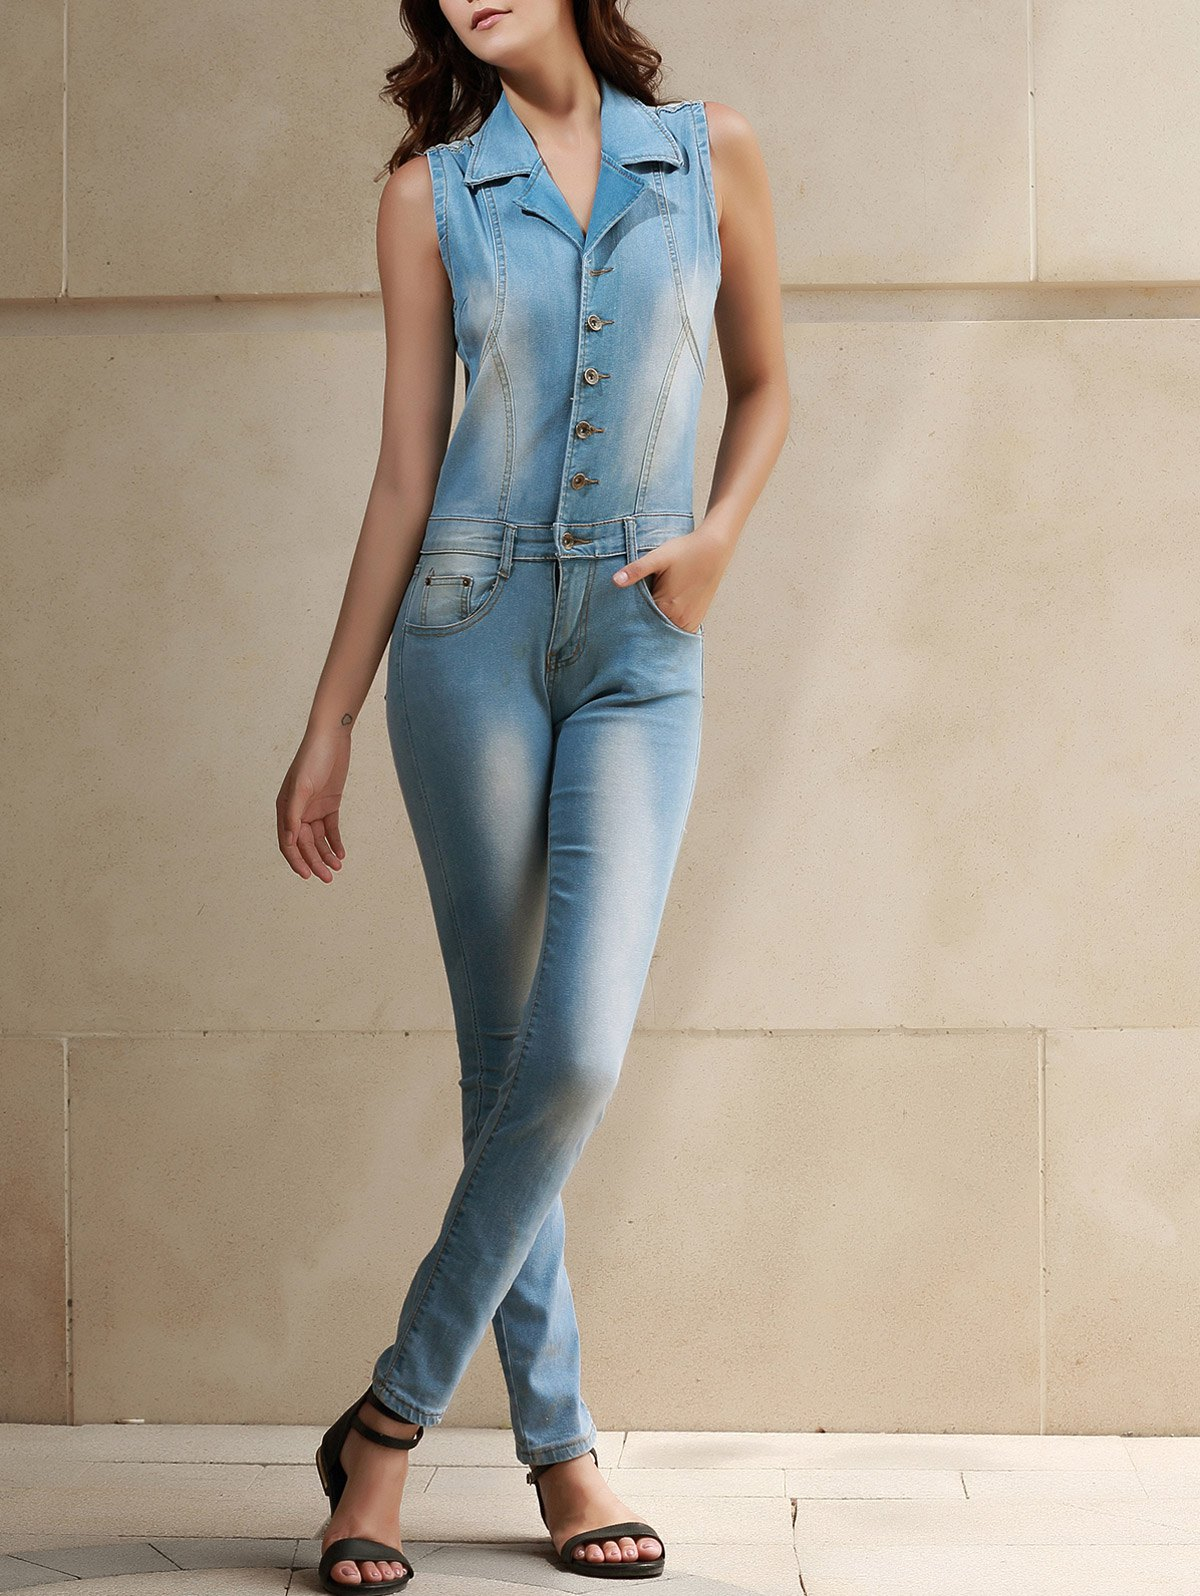 Stylish Womens Turn-Down Collar Sleeveless Bleach Wash Denim JumpsuitWomen<br><br><br>Size: S<br>Color: BLUE